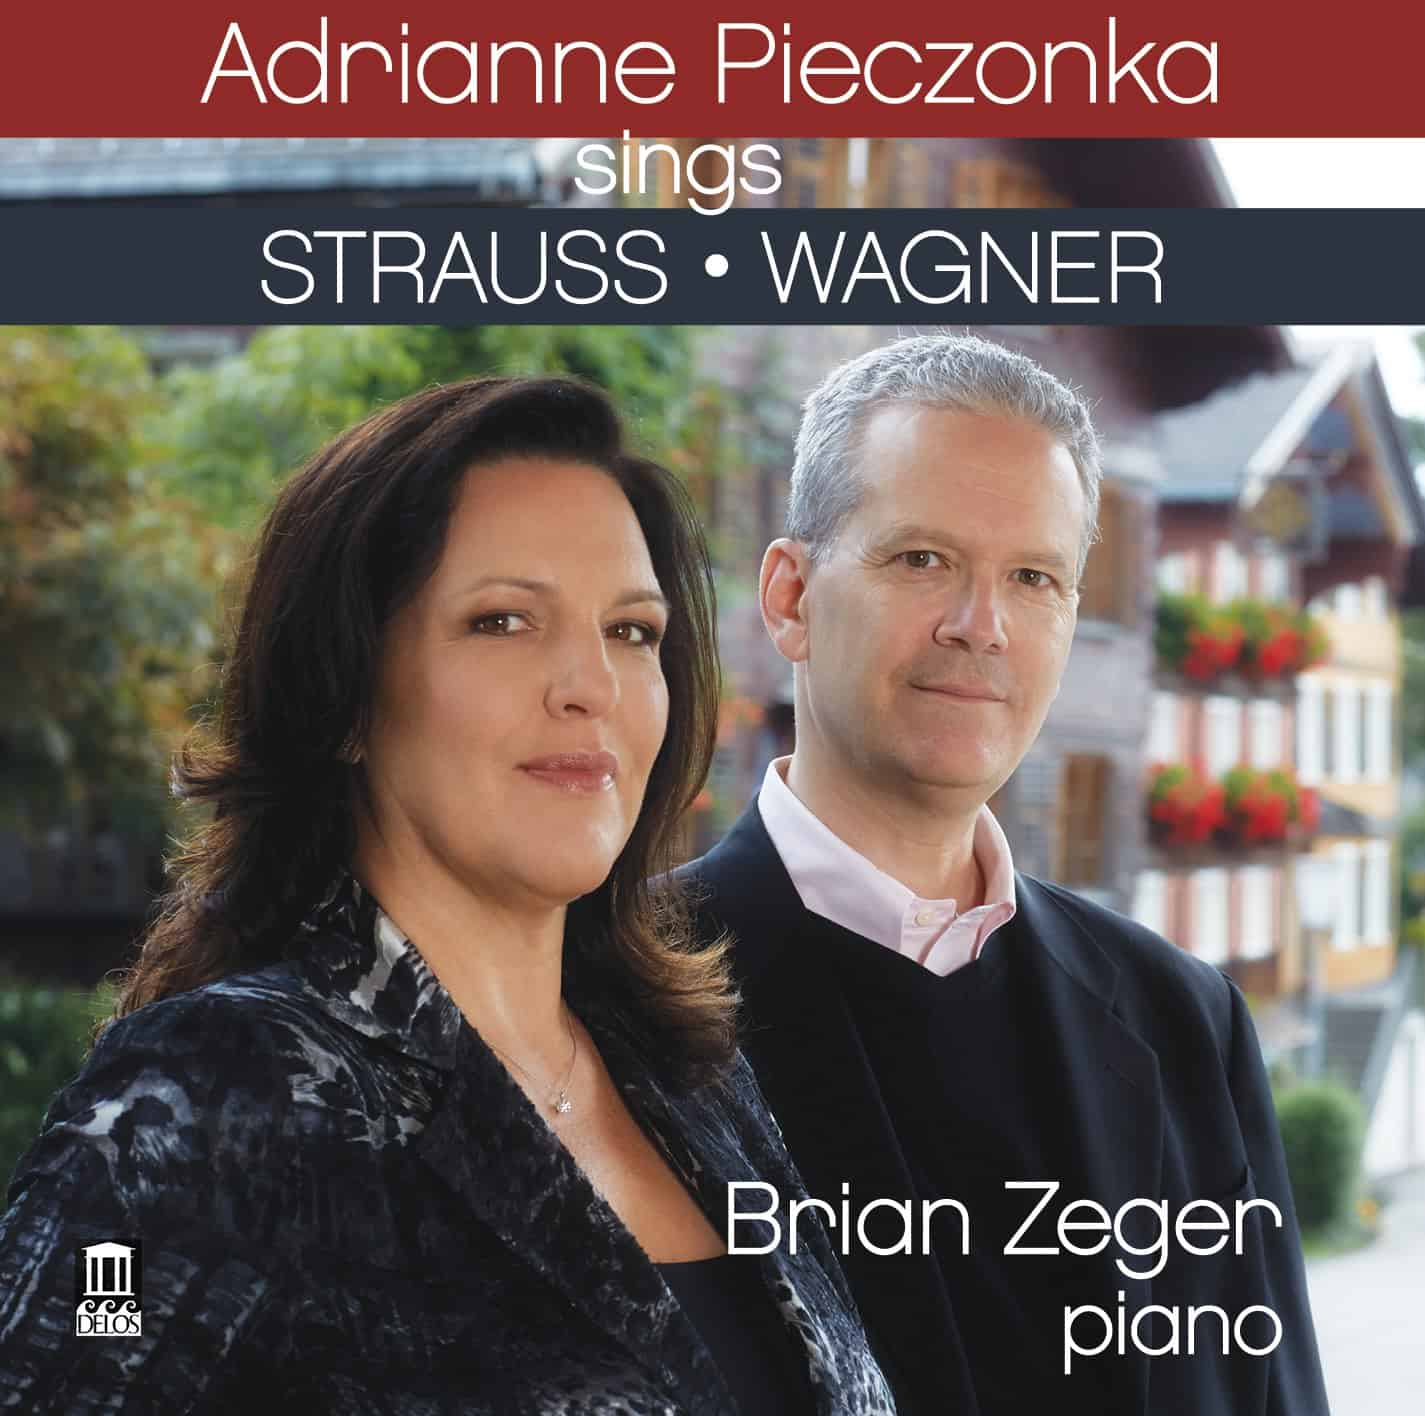 Adrianne Pieczonka Sings Strauss and Wagner